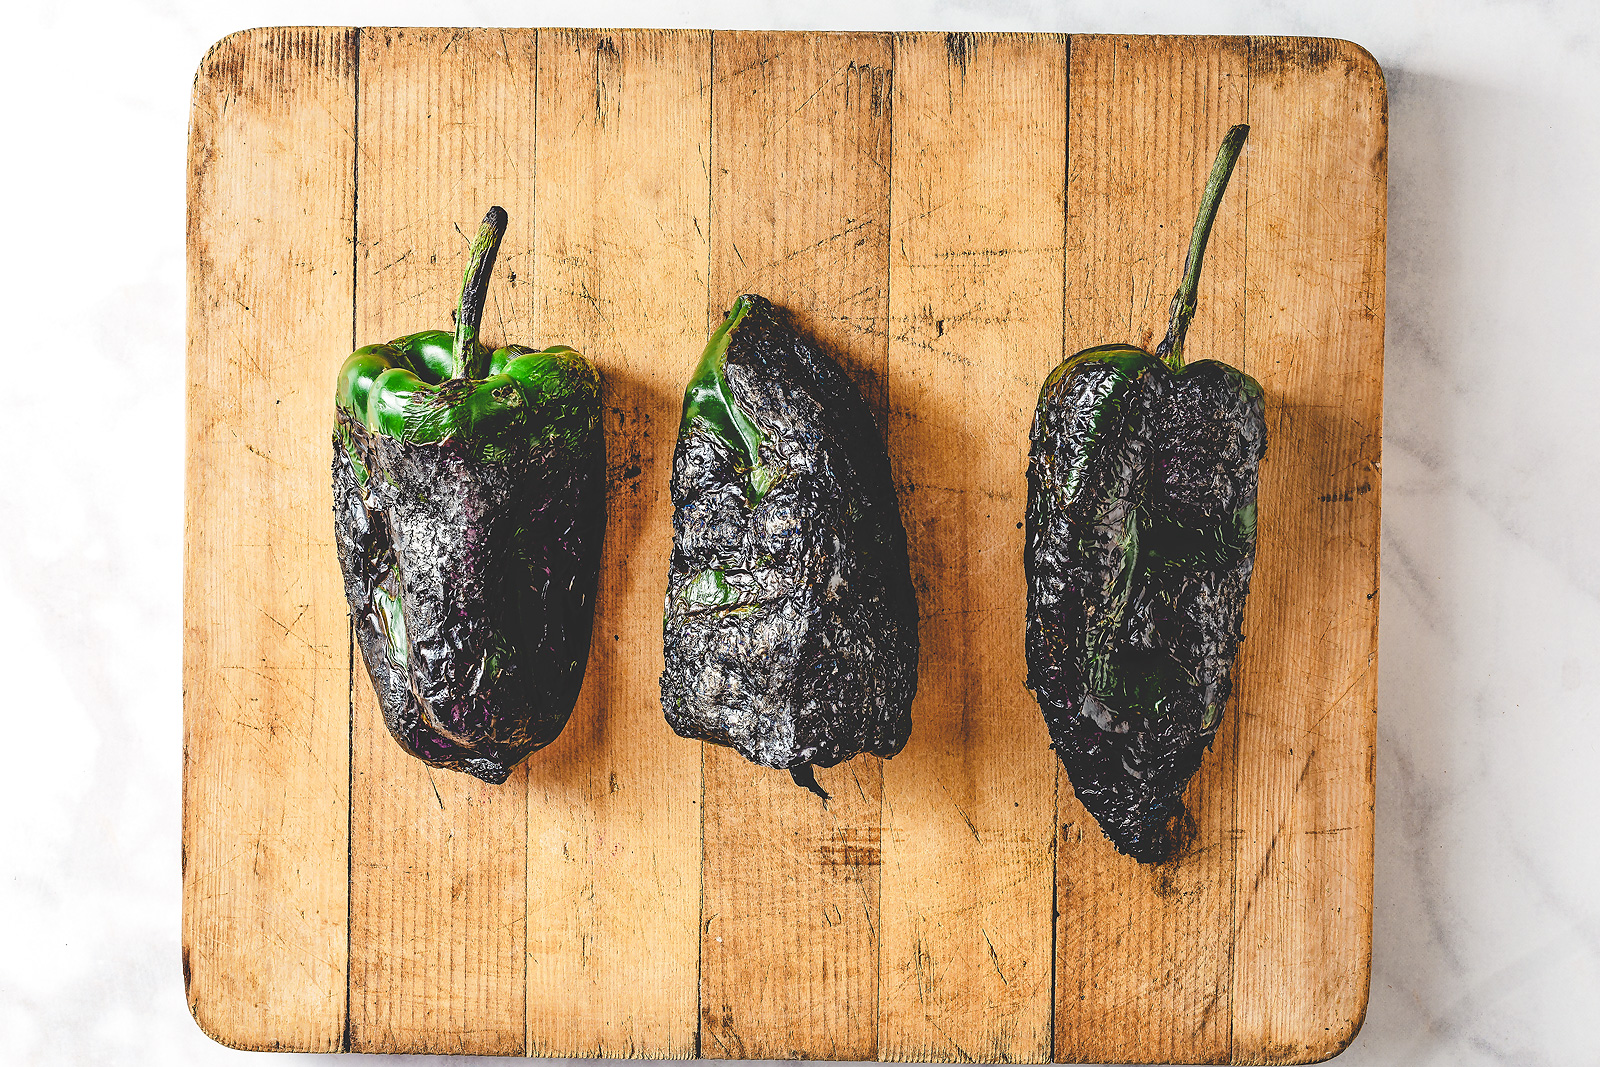 Three roasted and charred poblano peppers on a chopping board.